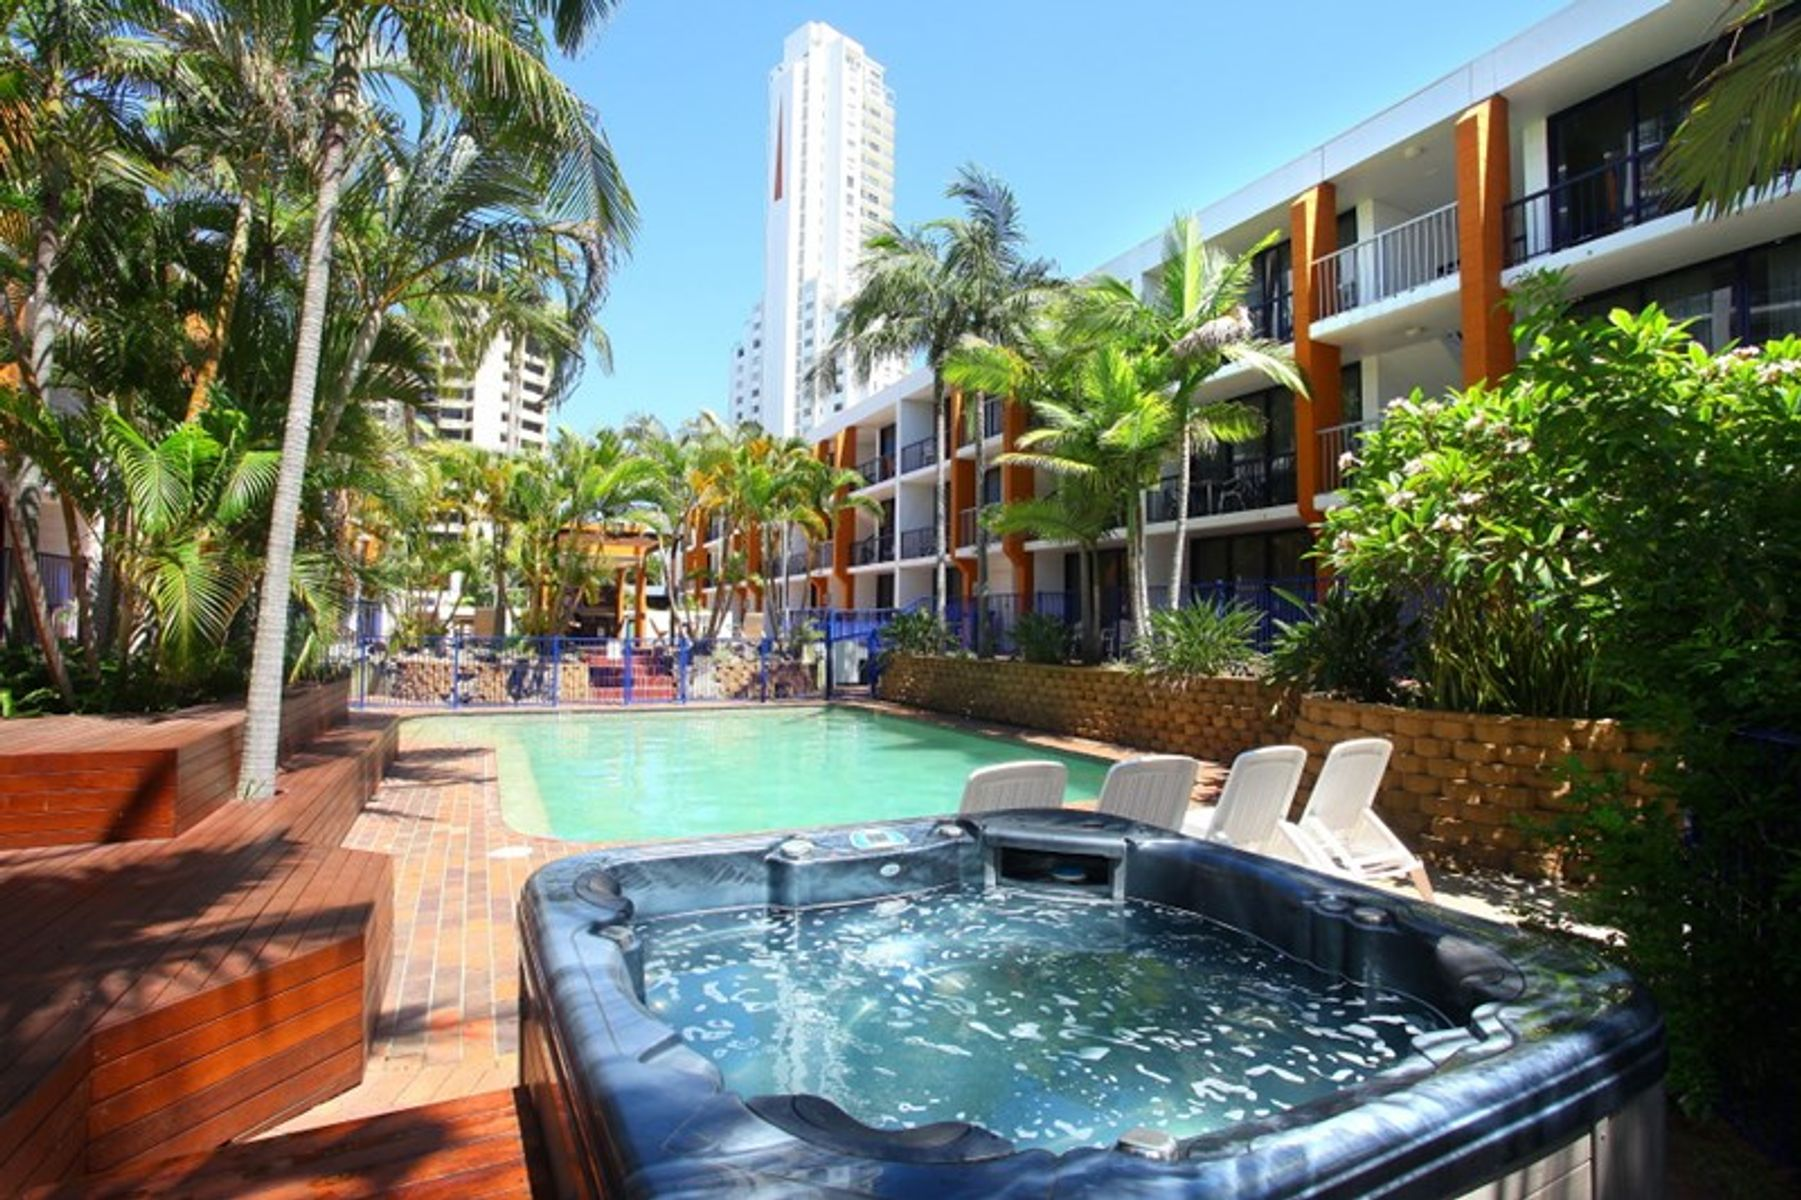 23/2877 Gold Coast Highway, Surfers Paradise, QLD 4217